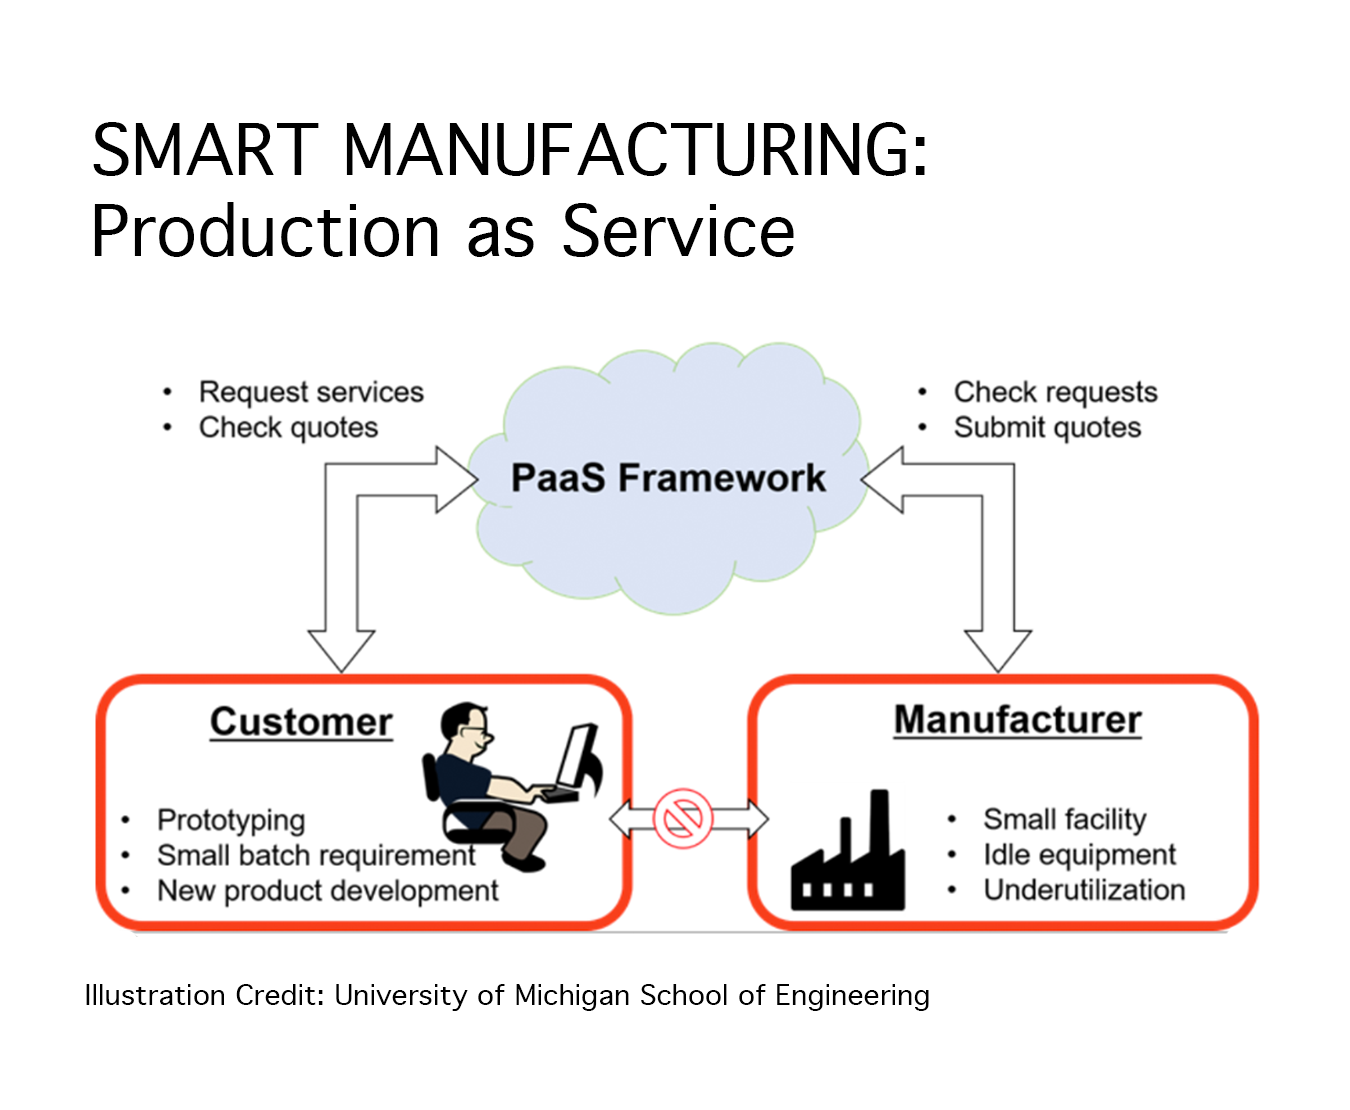 Benefits of smart manufacturing. Illustration shows production as service responsive manufacturing for customers